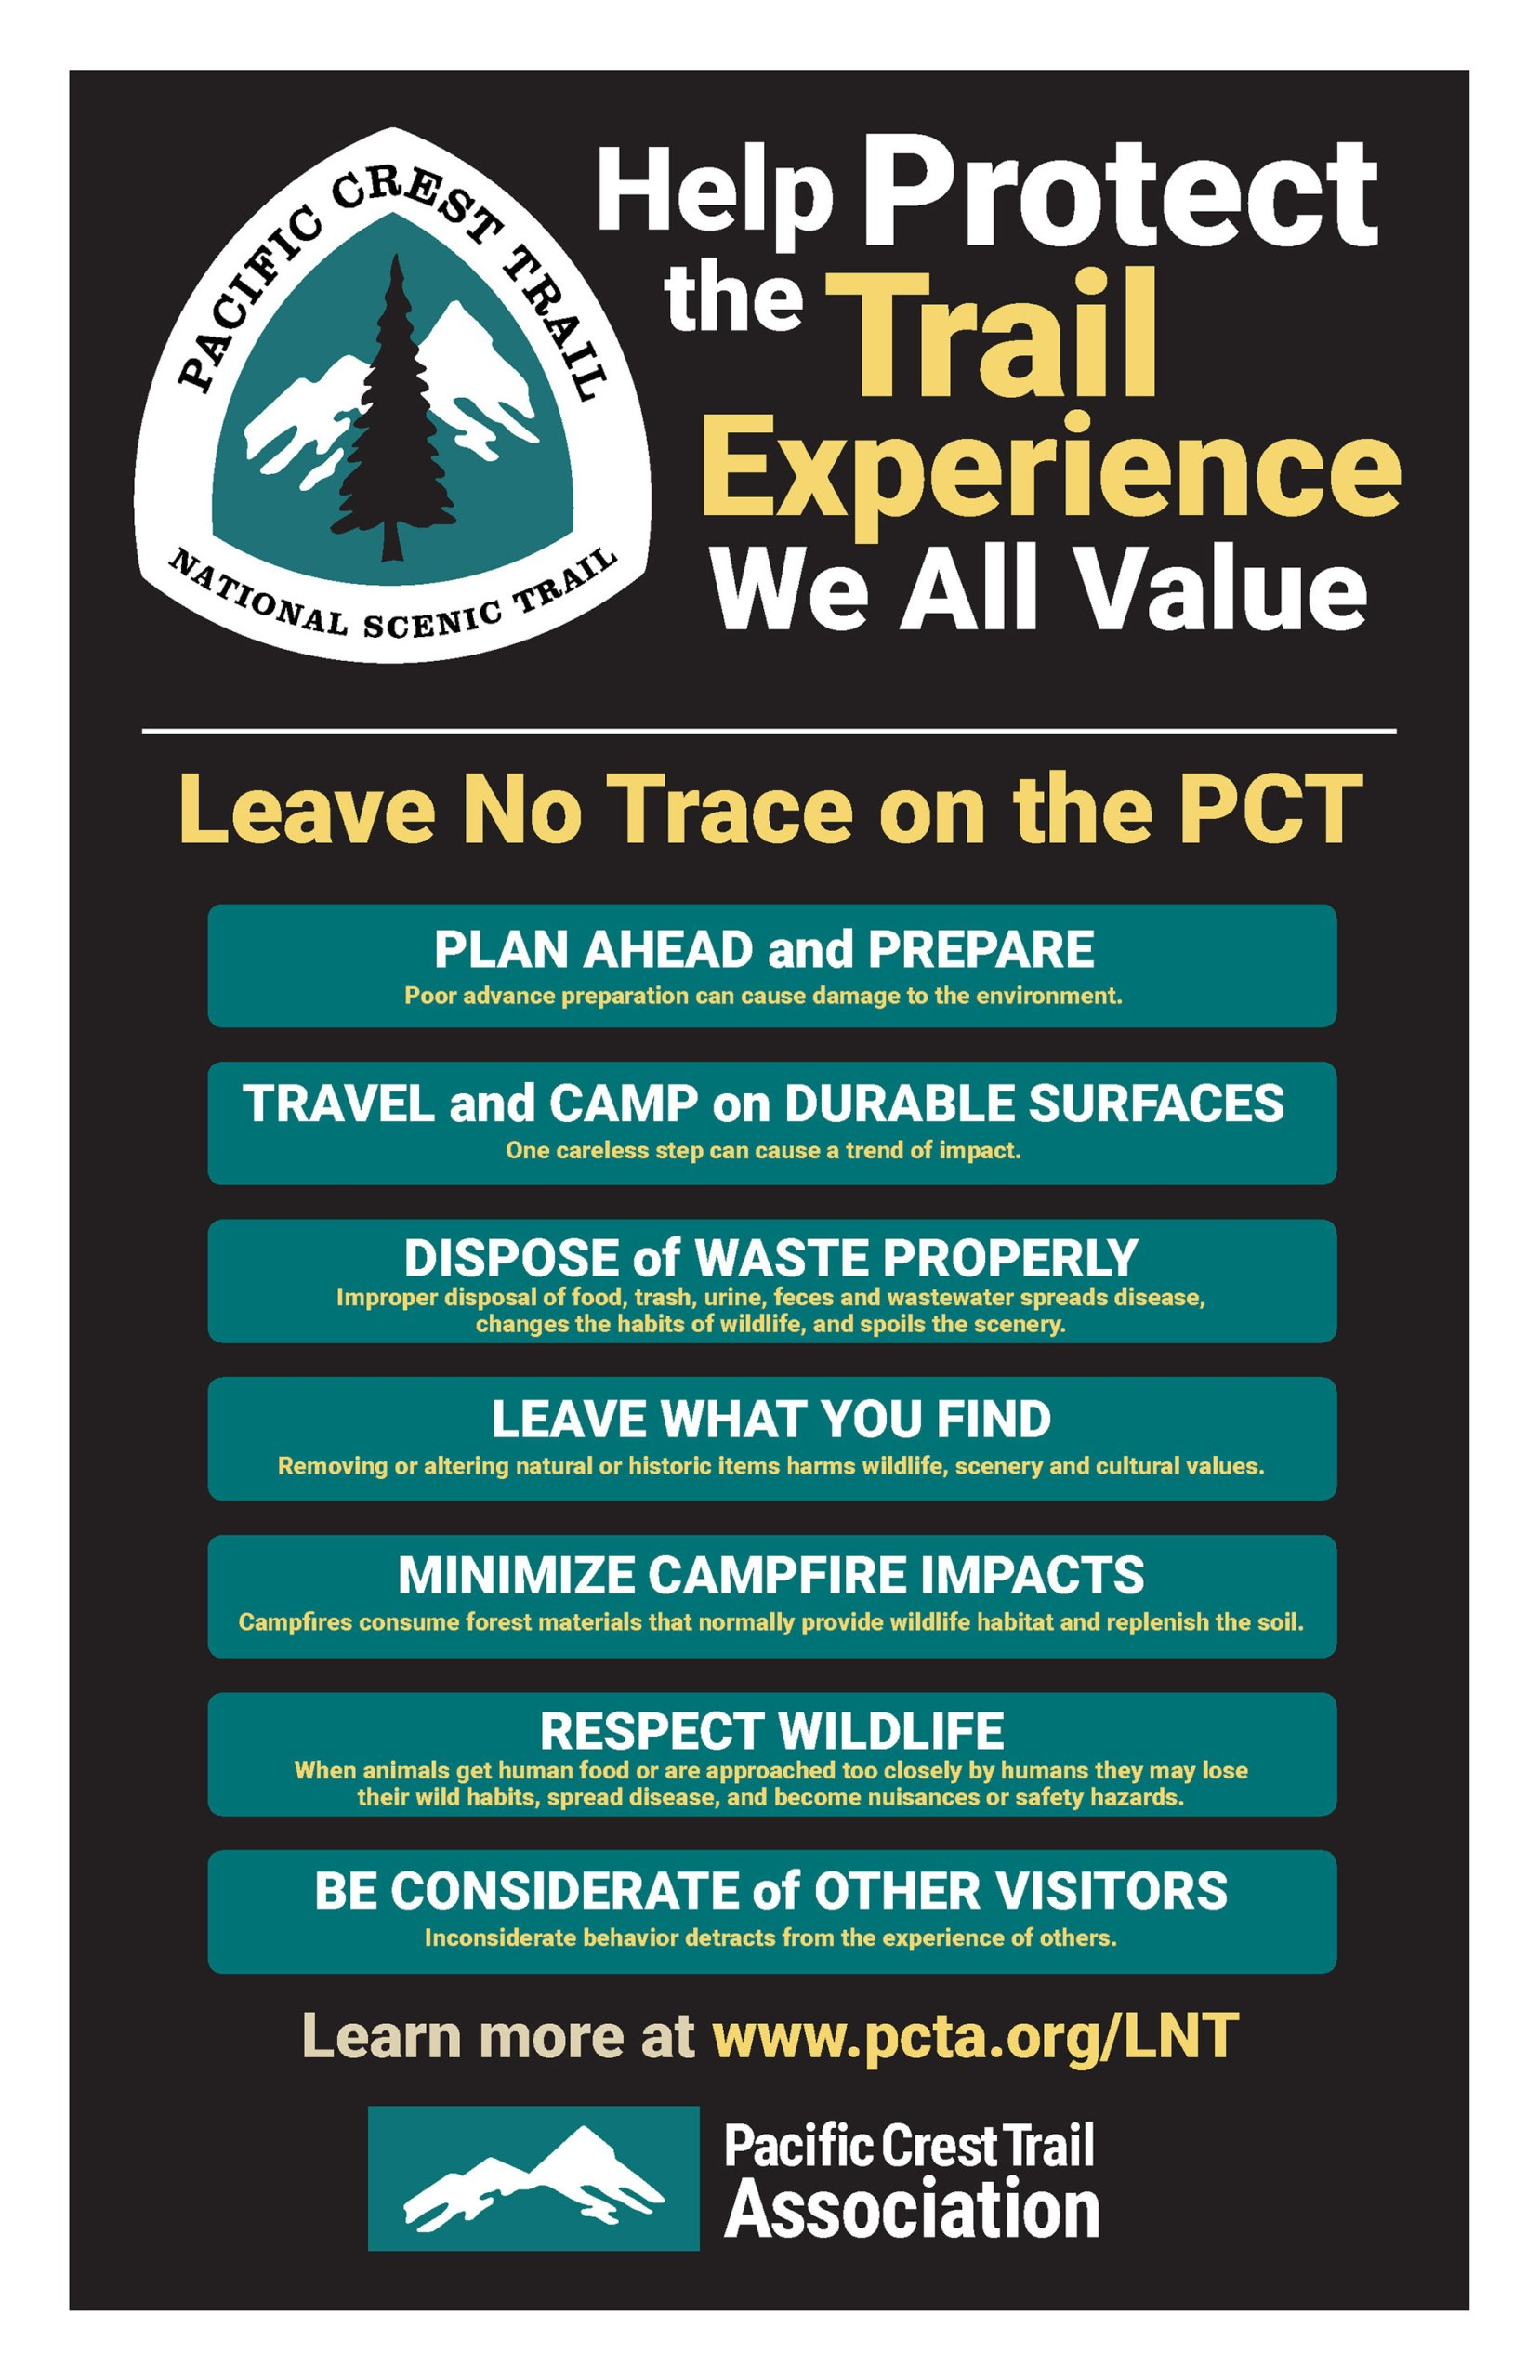 Pacific Crest Trail Leave No Trace poster